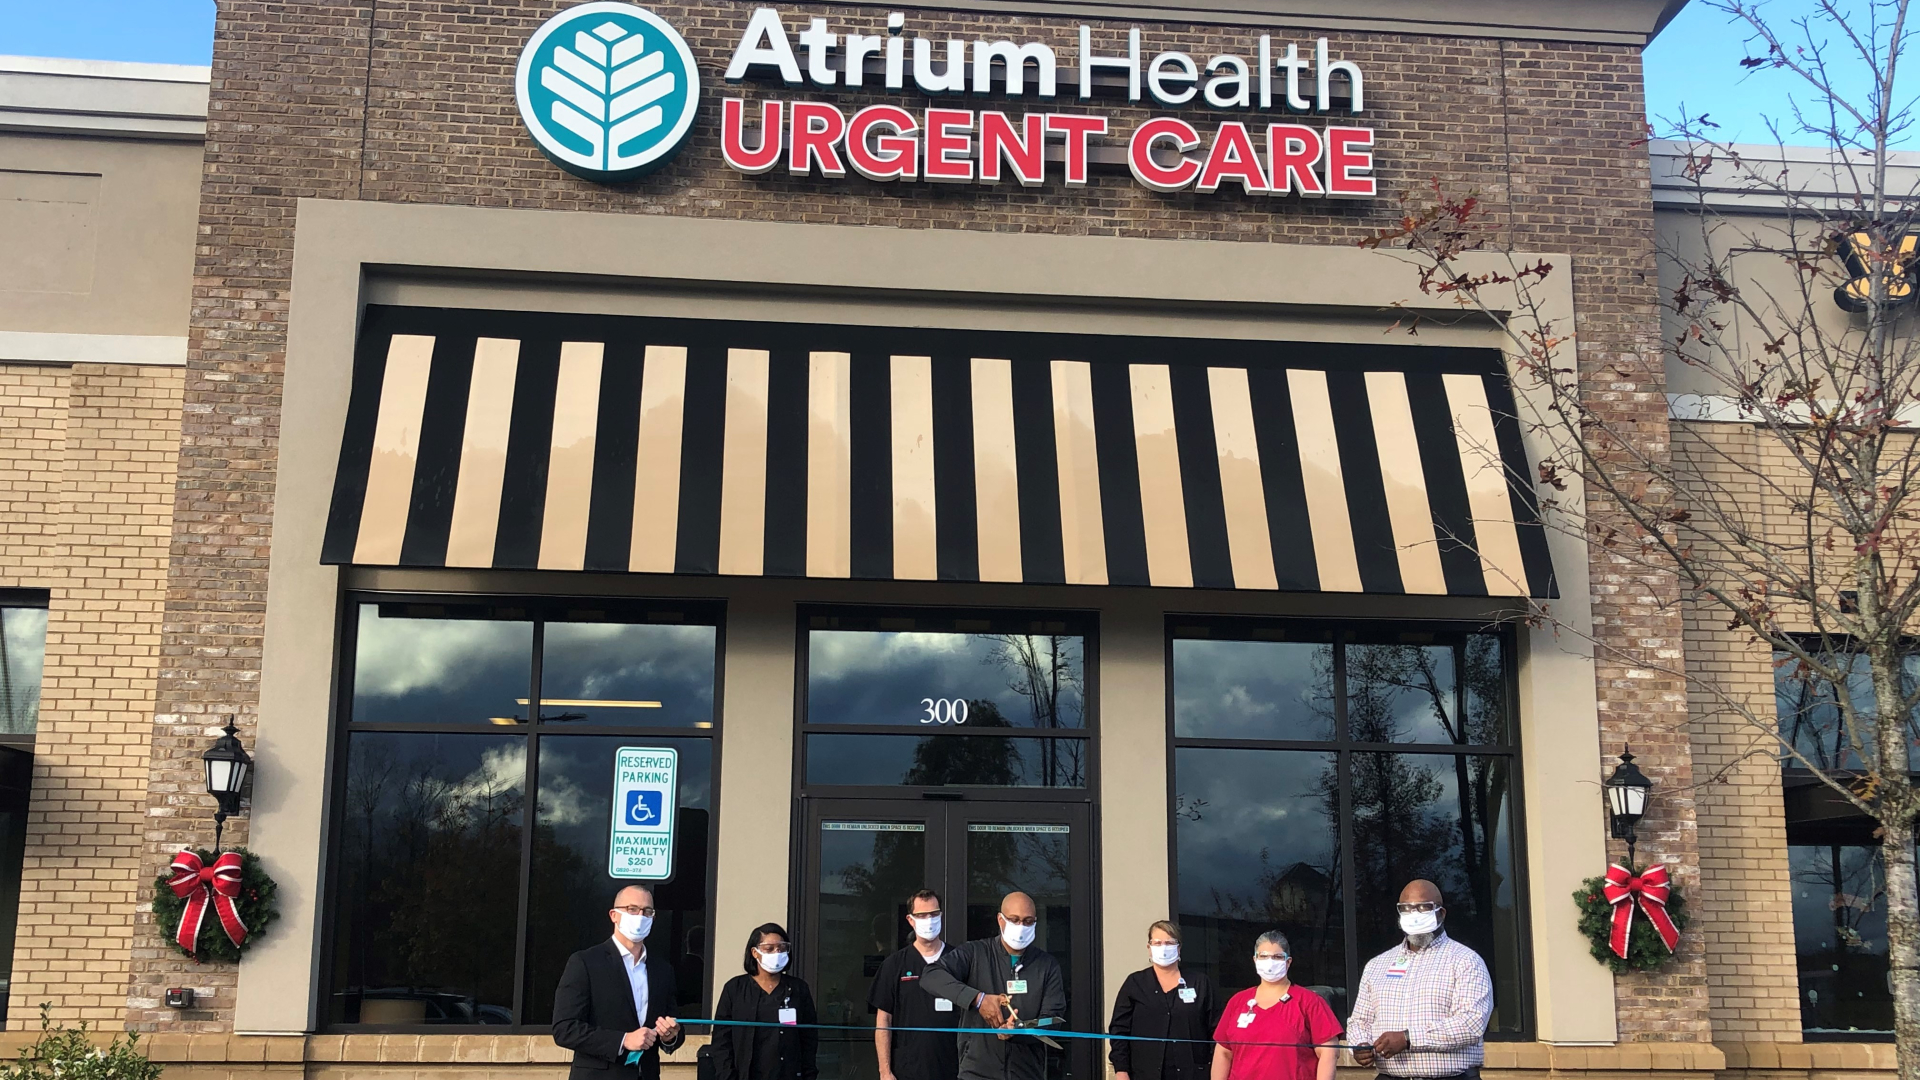 A new Atrium Health urgent care facility is now open. Atrium Health Urgent Care – Red Stone, located in Indian Land, South Carolina, opened on November 30, operating from 8 a.m. – 8 p.m., seven days a week.